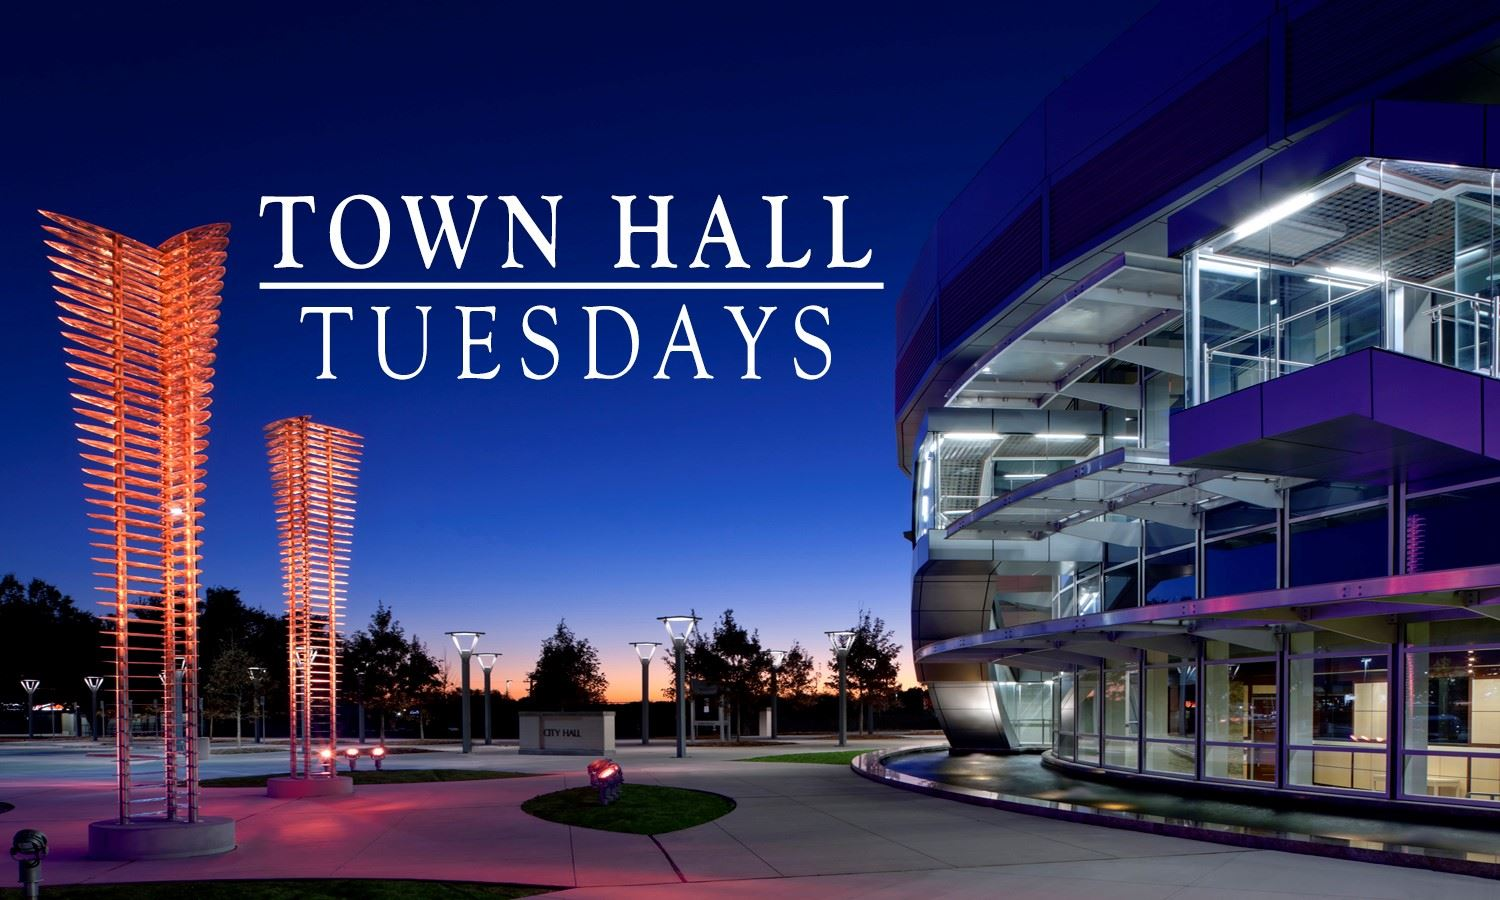 Town Hall Tuesdays